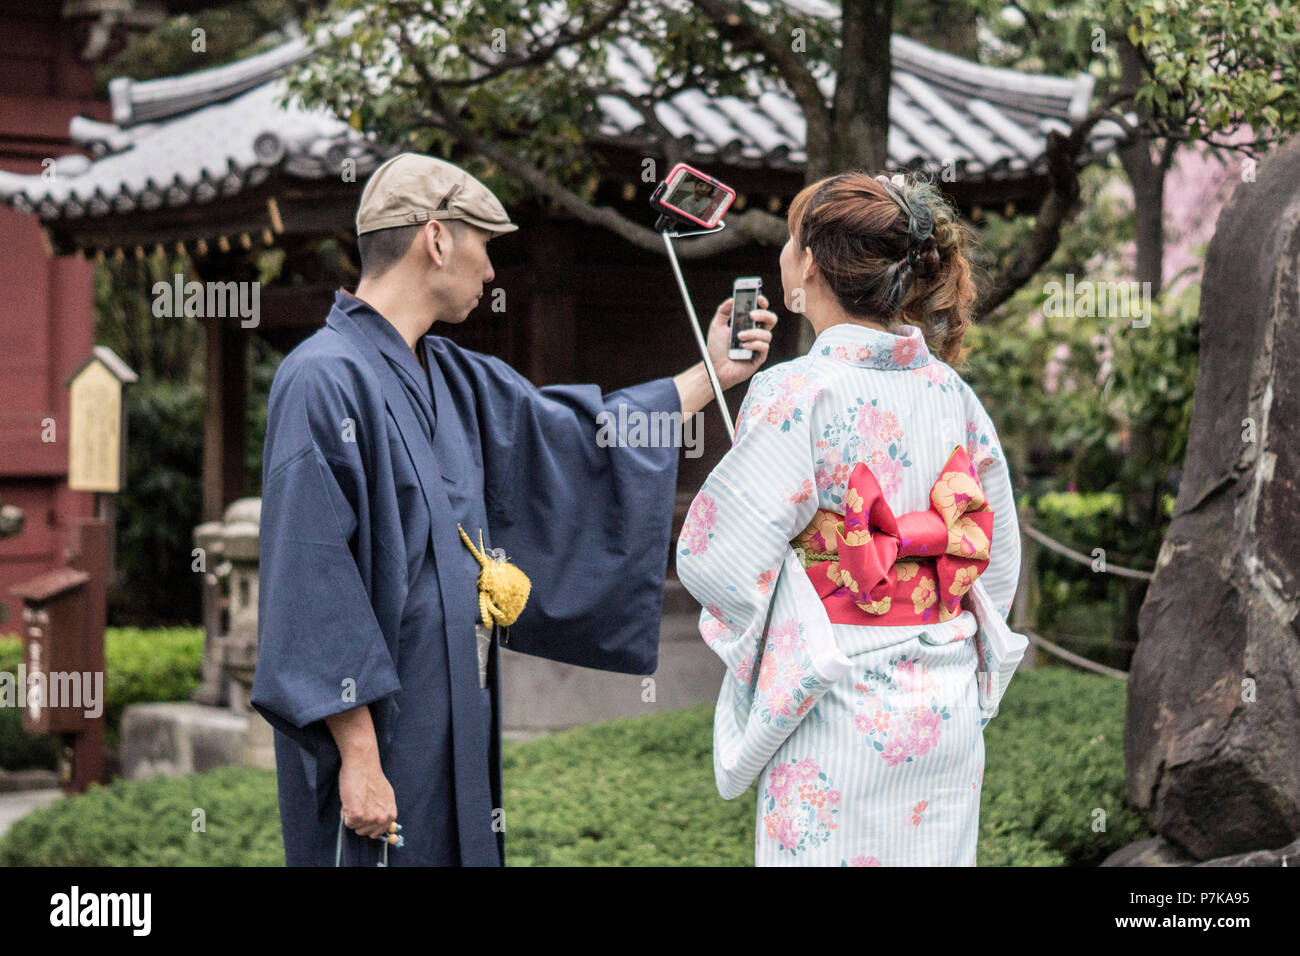 Two people taking selfies in a temple complex in Tokyo - Stock Image